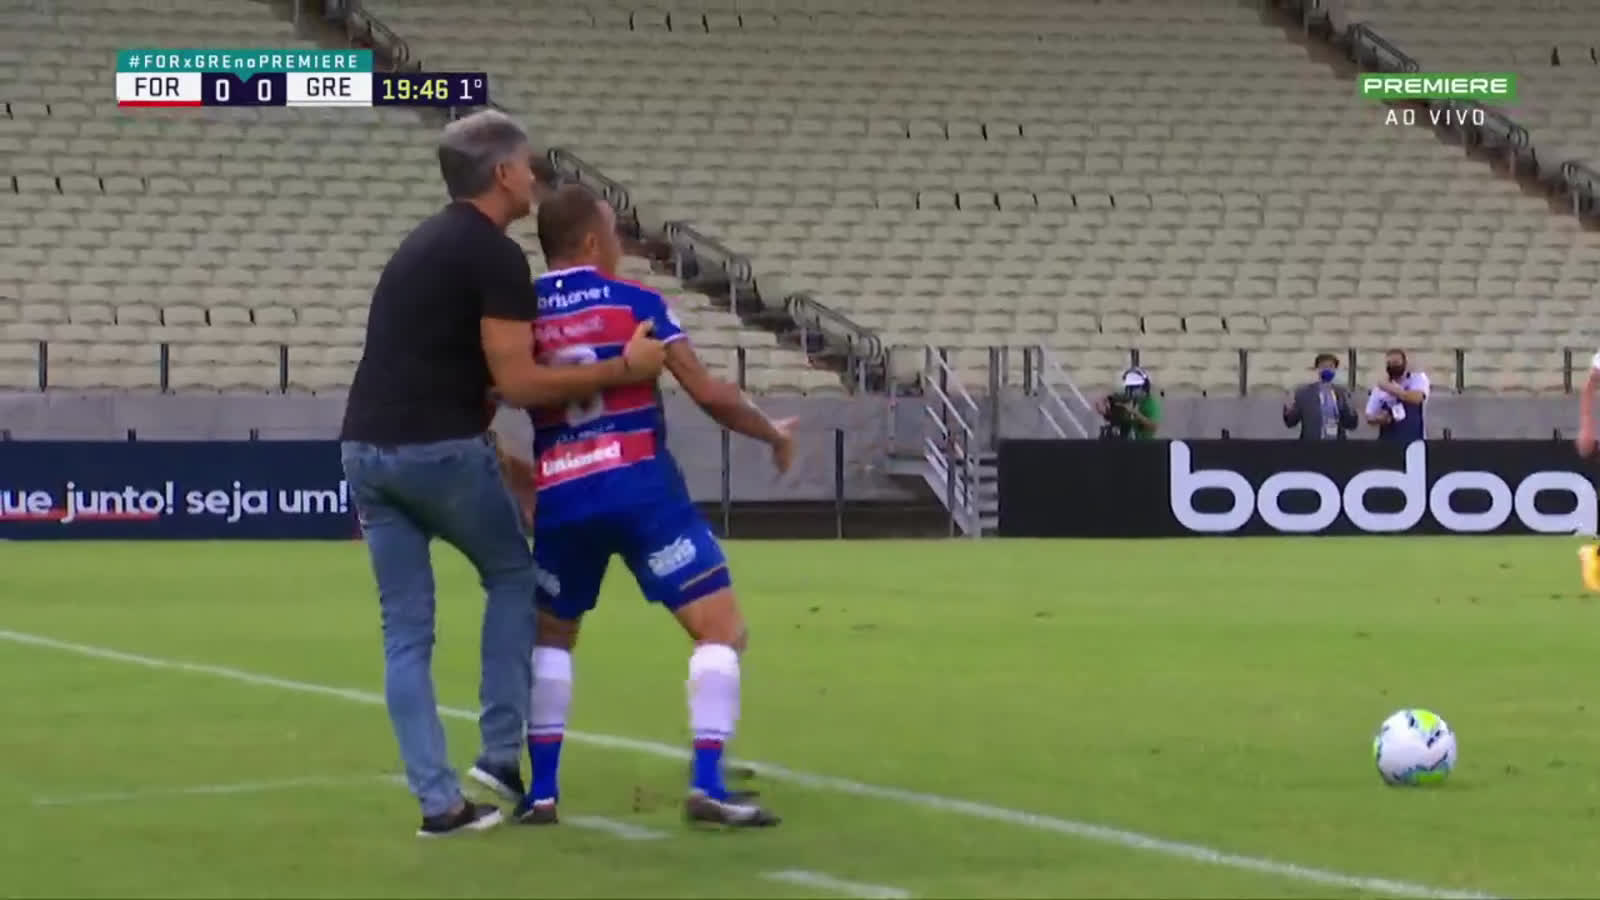 Renato Gaúcho (Grêmio's Manager) stops the Fortaleza player with a foul